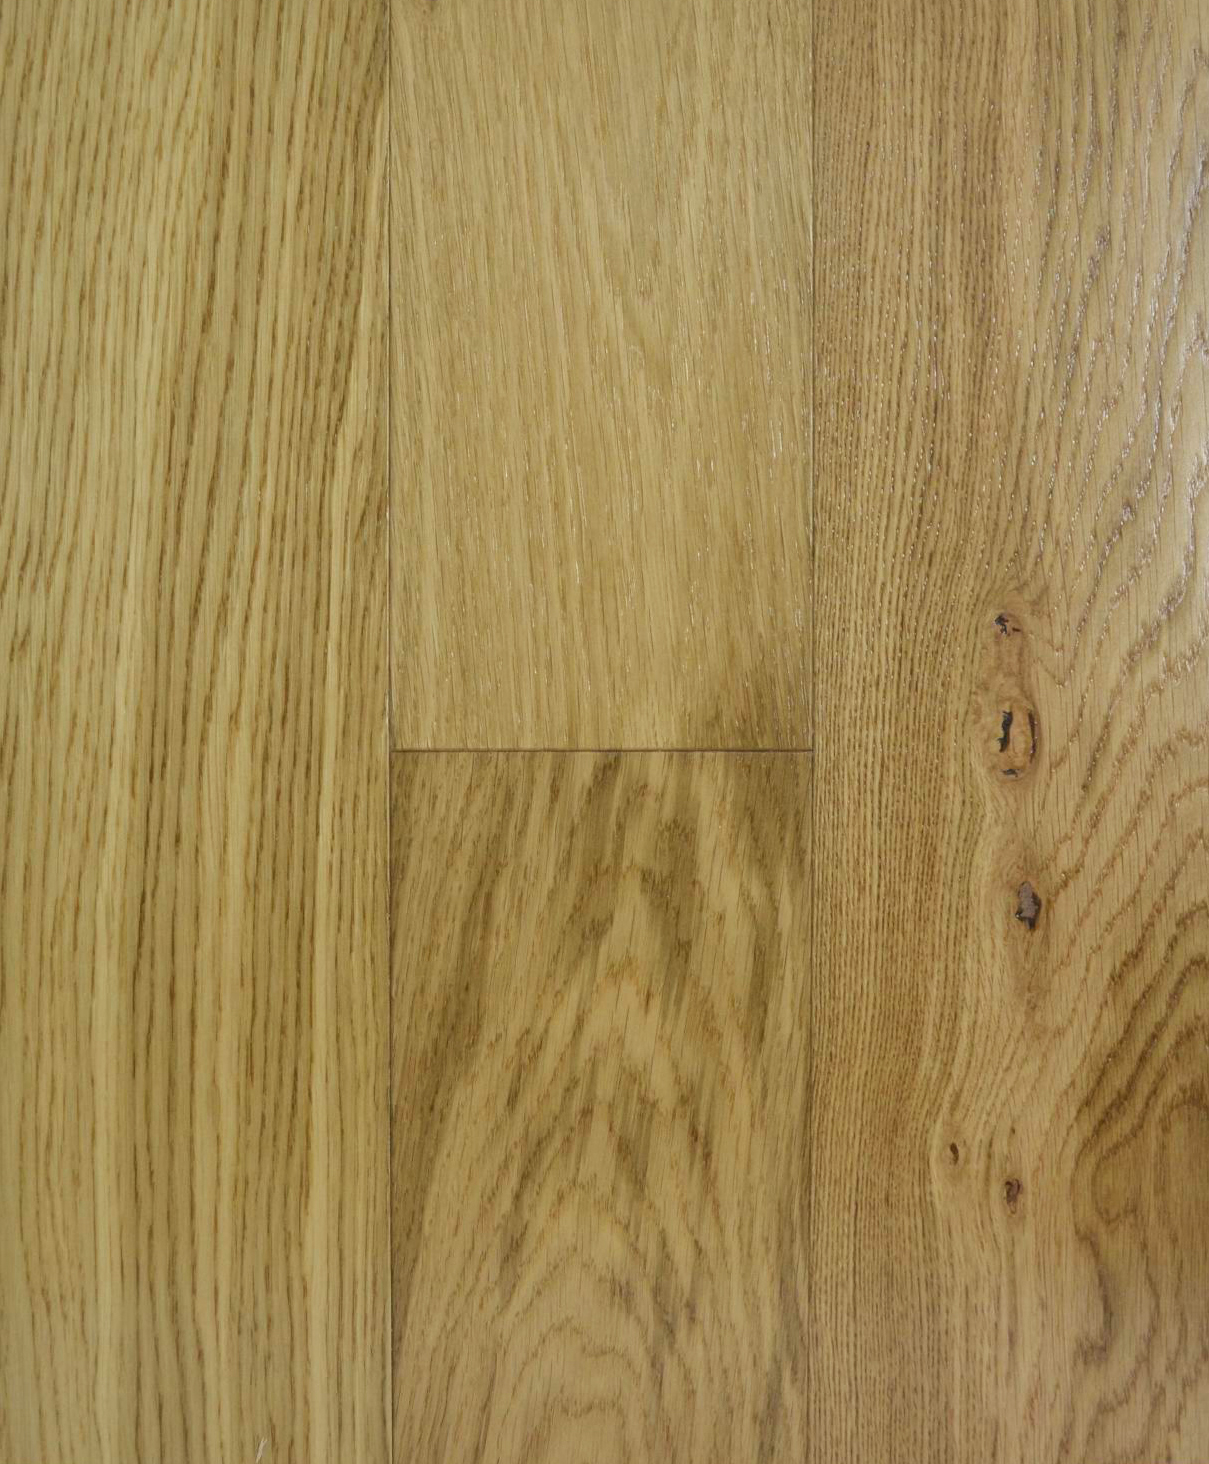 Lm Flooring Center Street Natural White Oak